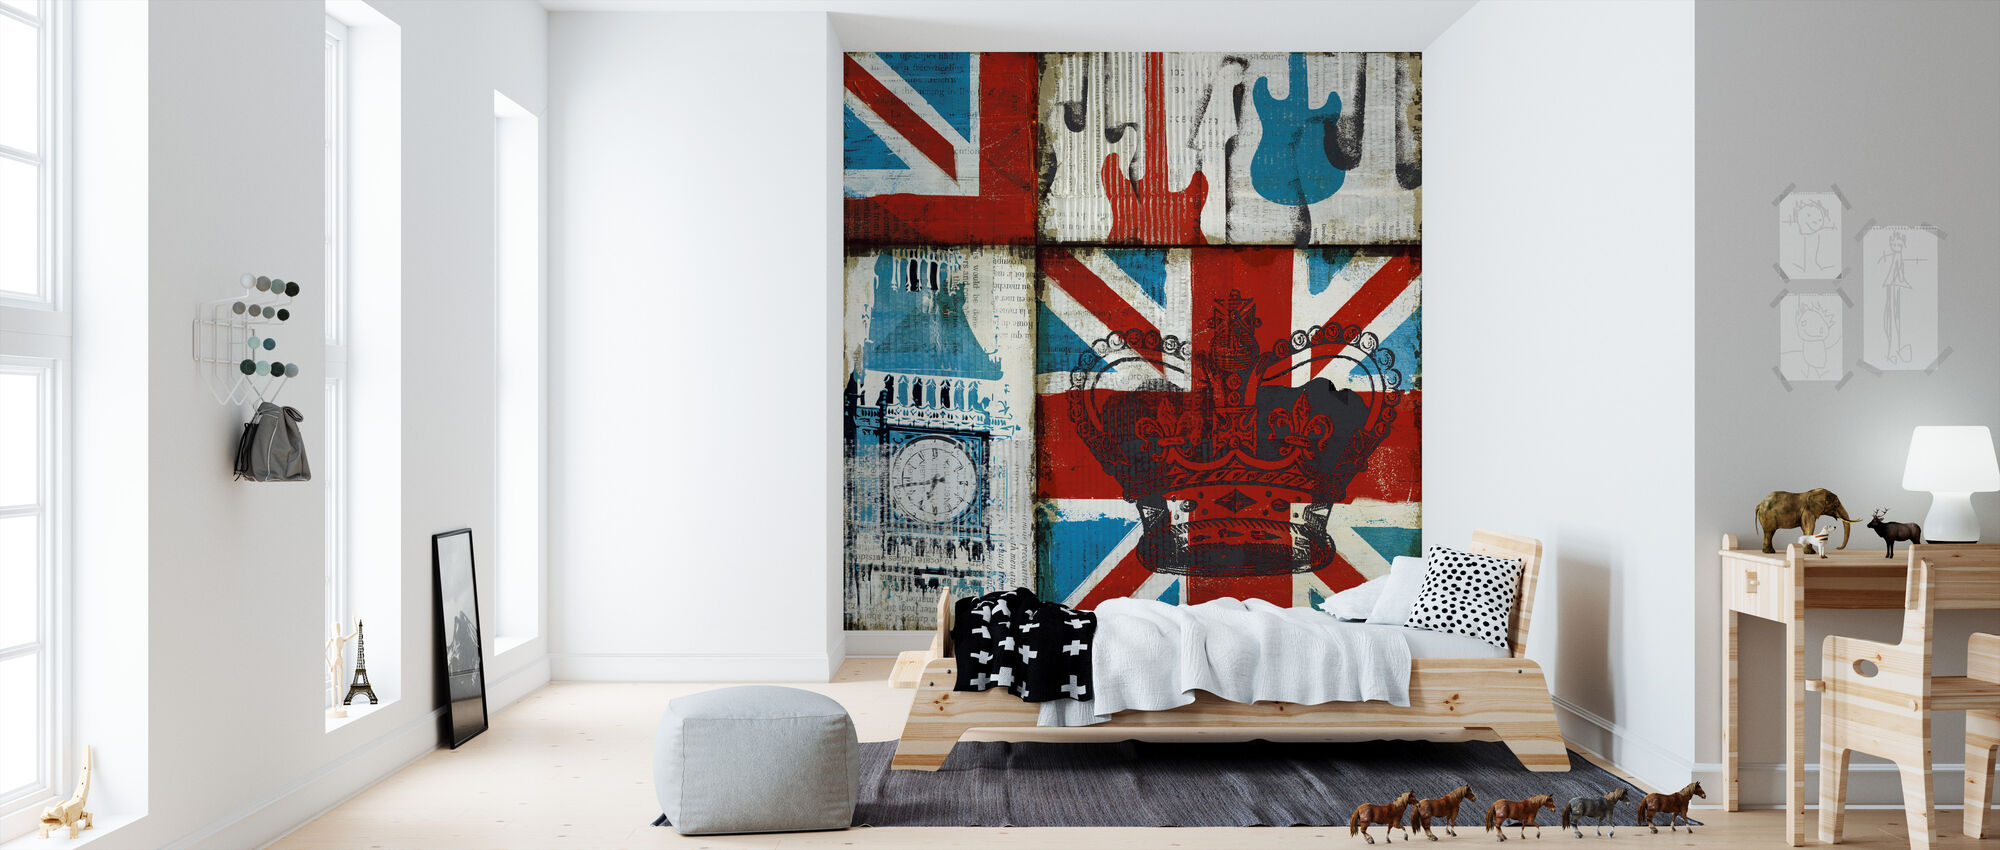 british rock i d coration murale pas cher photowall. Black Bedroom Furniture Sets. Home Design Ideas